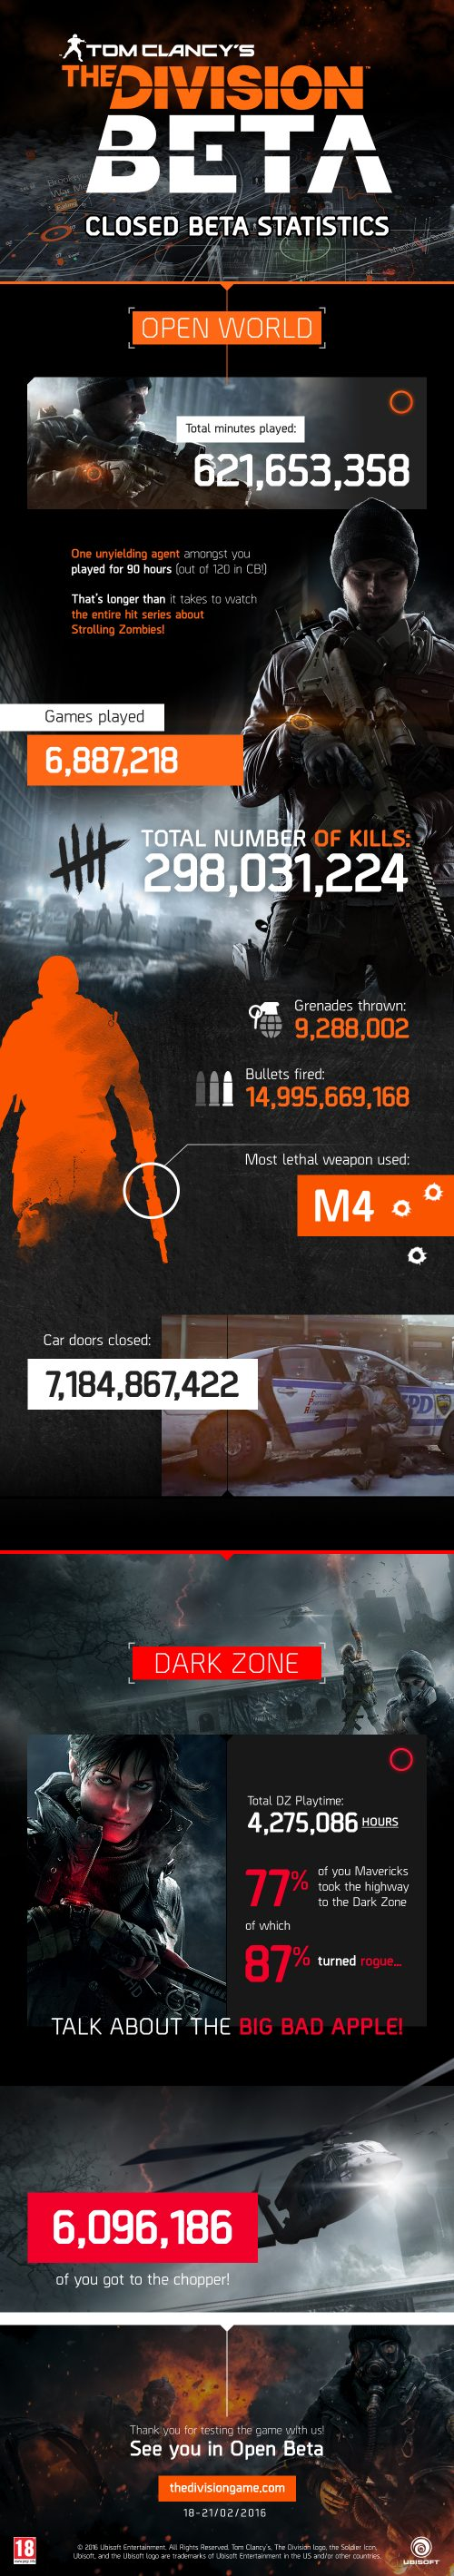 Get one More Chance at the Tom Clancy's The Division Beta from February 19-21